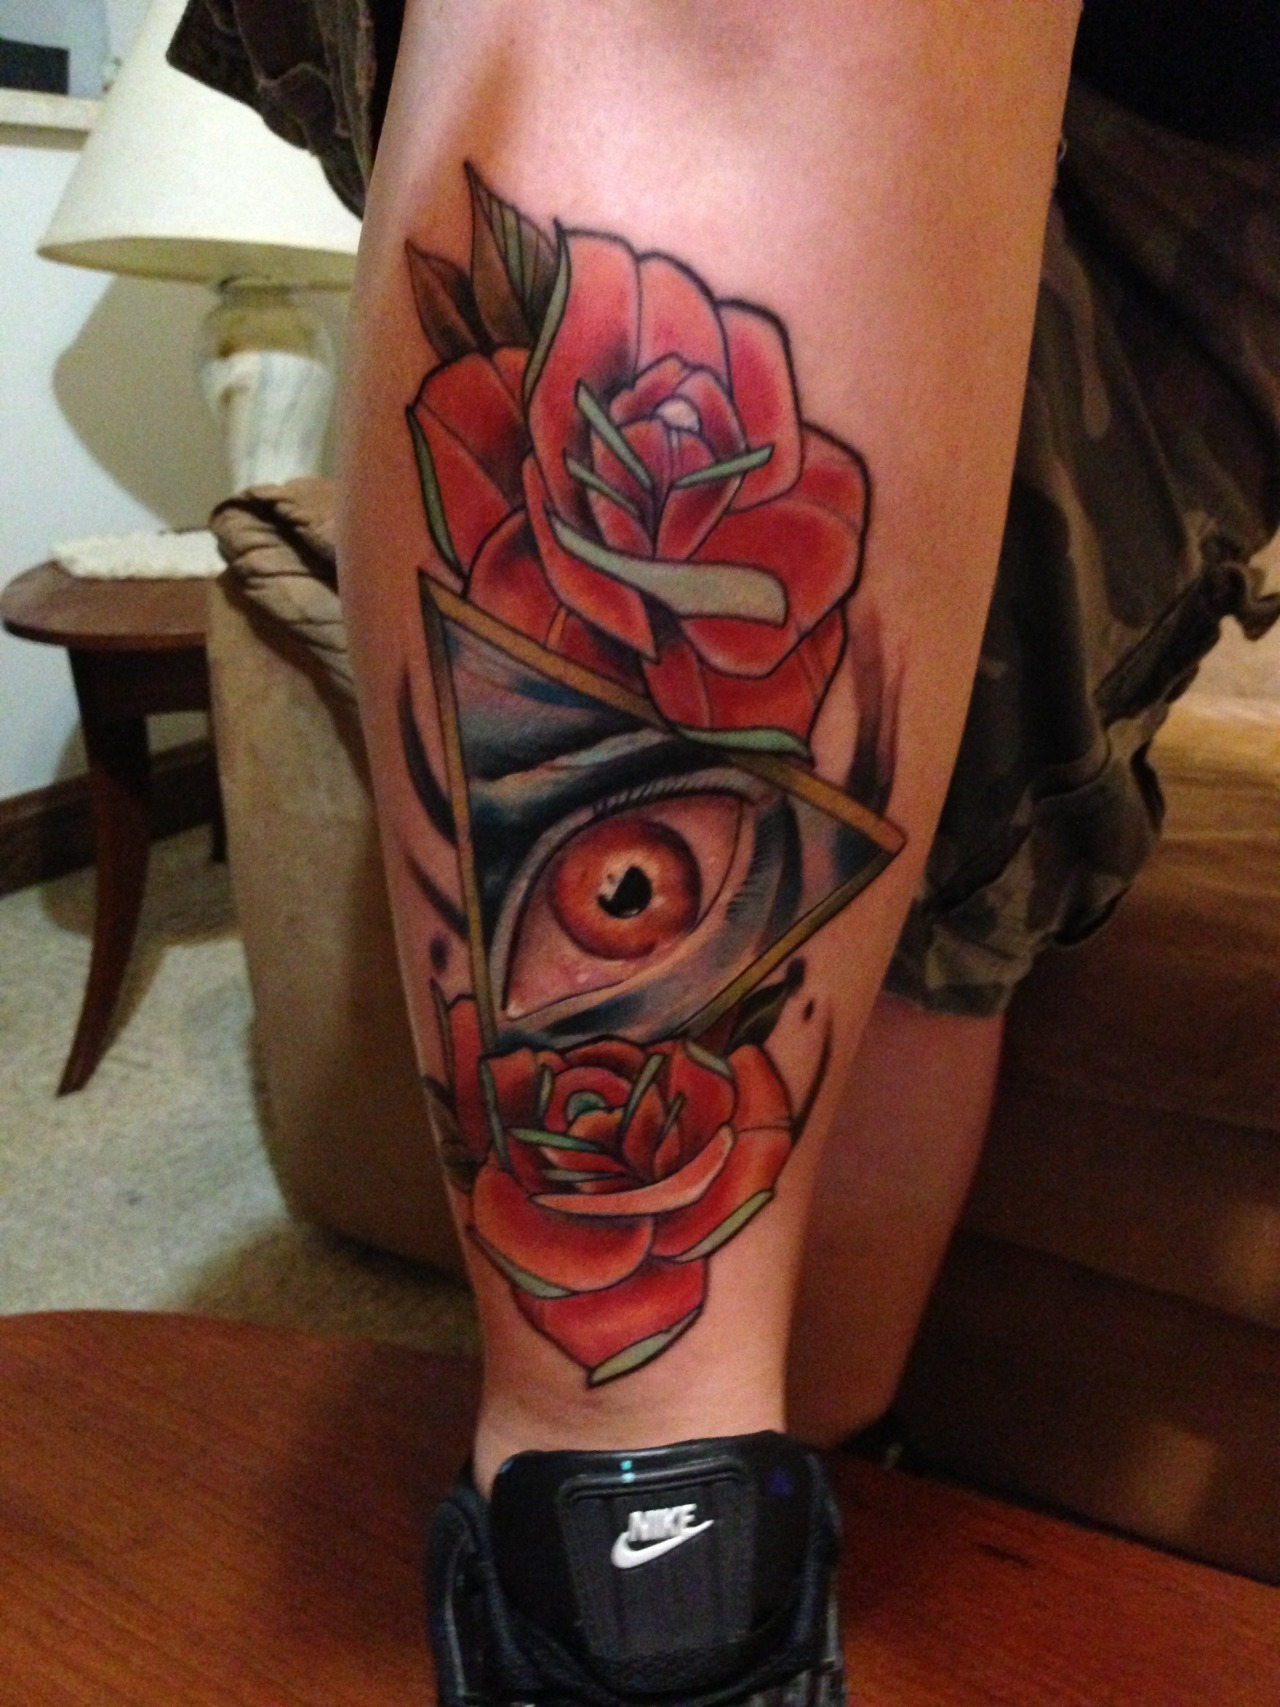 fuckyeahtattoos:  Done at High Street Tattoos in Columbus, OH. By Zach Wolf!